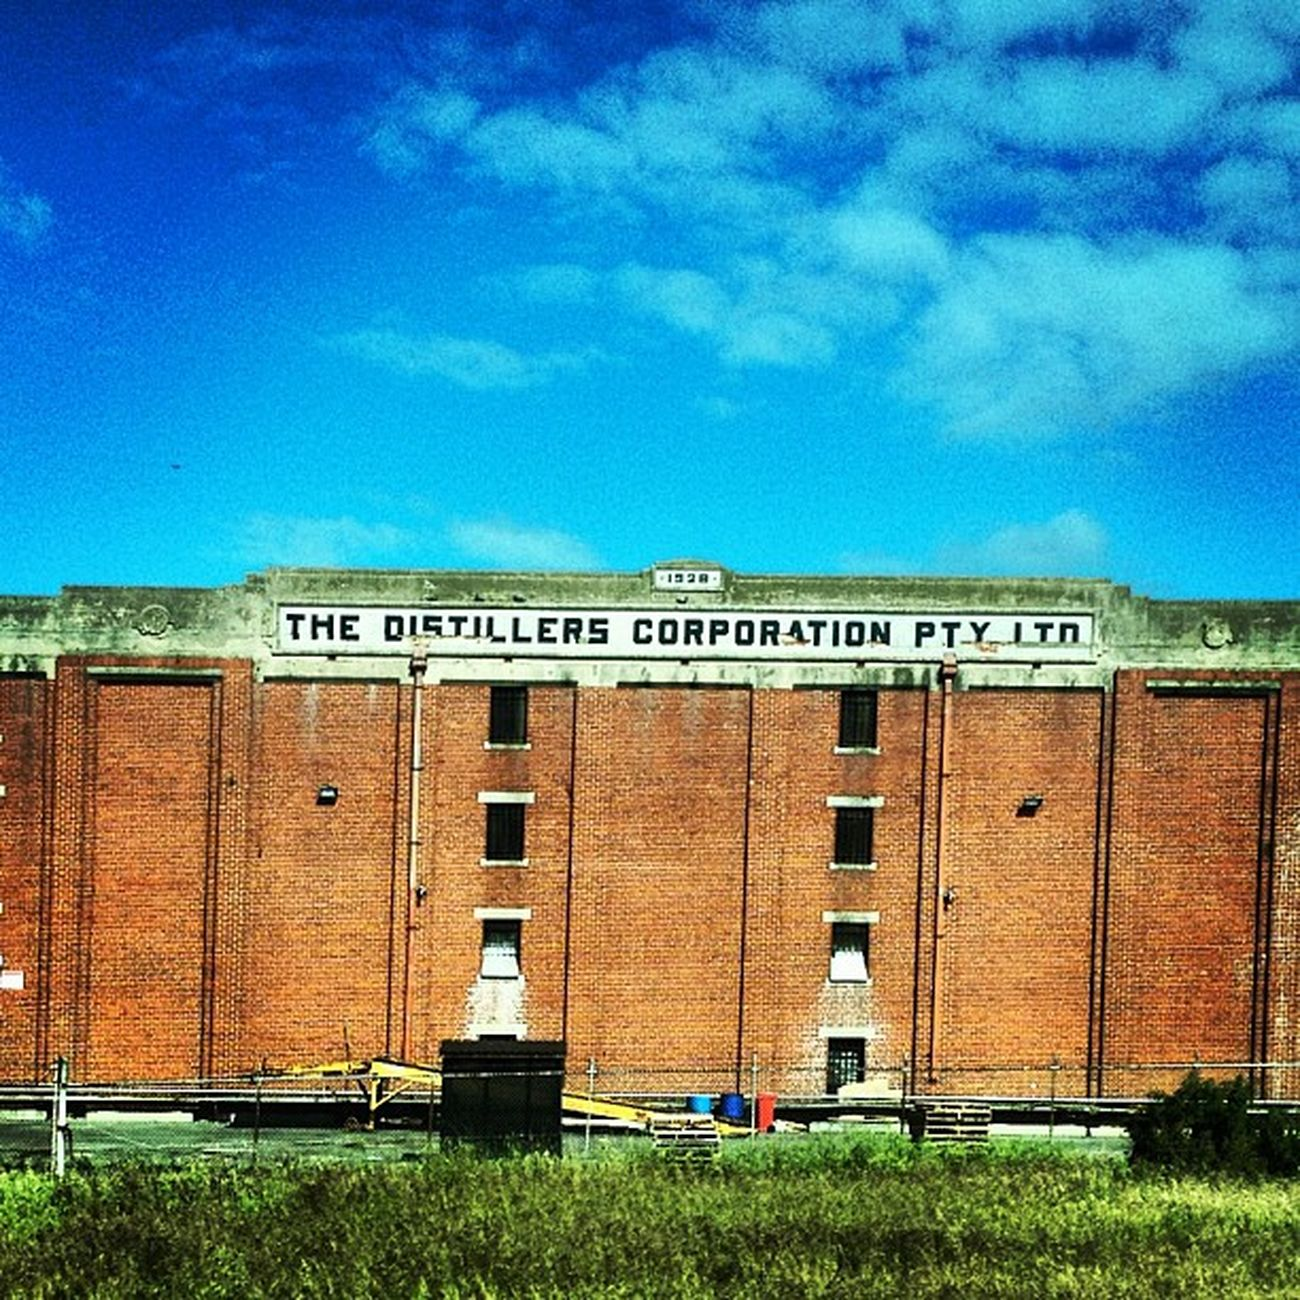 My kind of Corporation! #distillers #history #geelong #brick #brickporn #bluesky #skyporn History Brick Skyporn Bluesky Brickporn Geelong Distillers